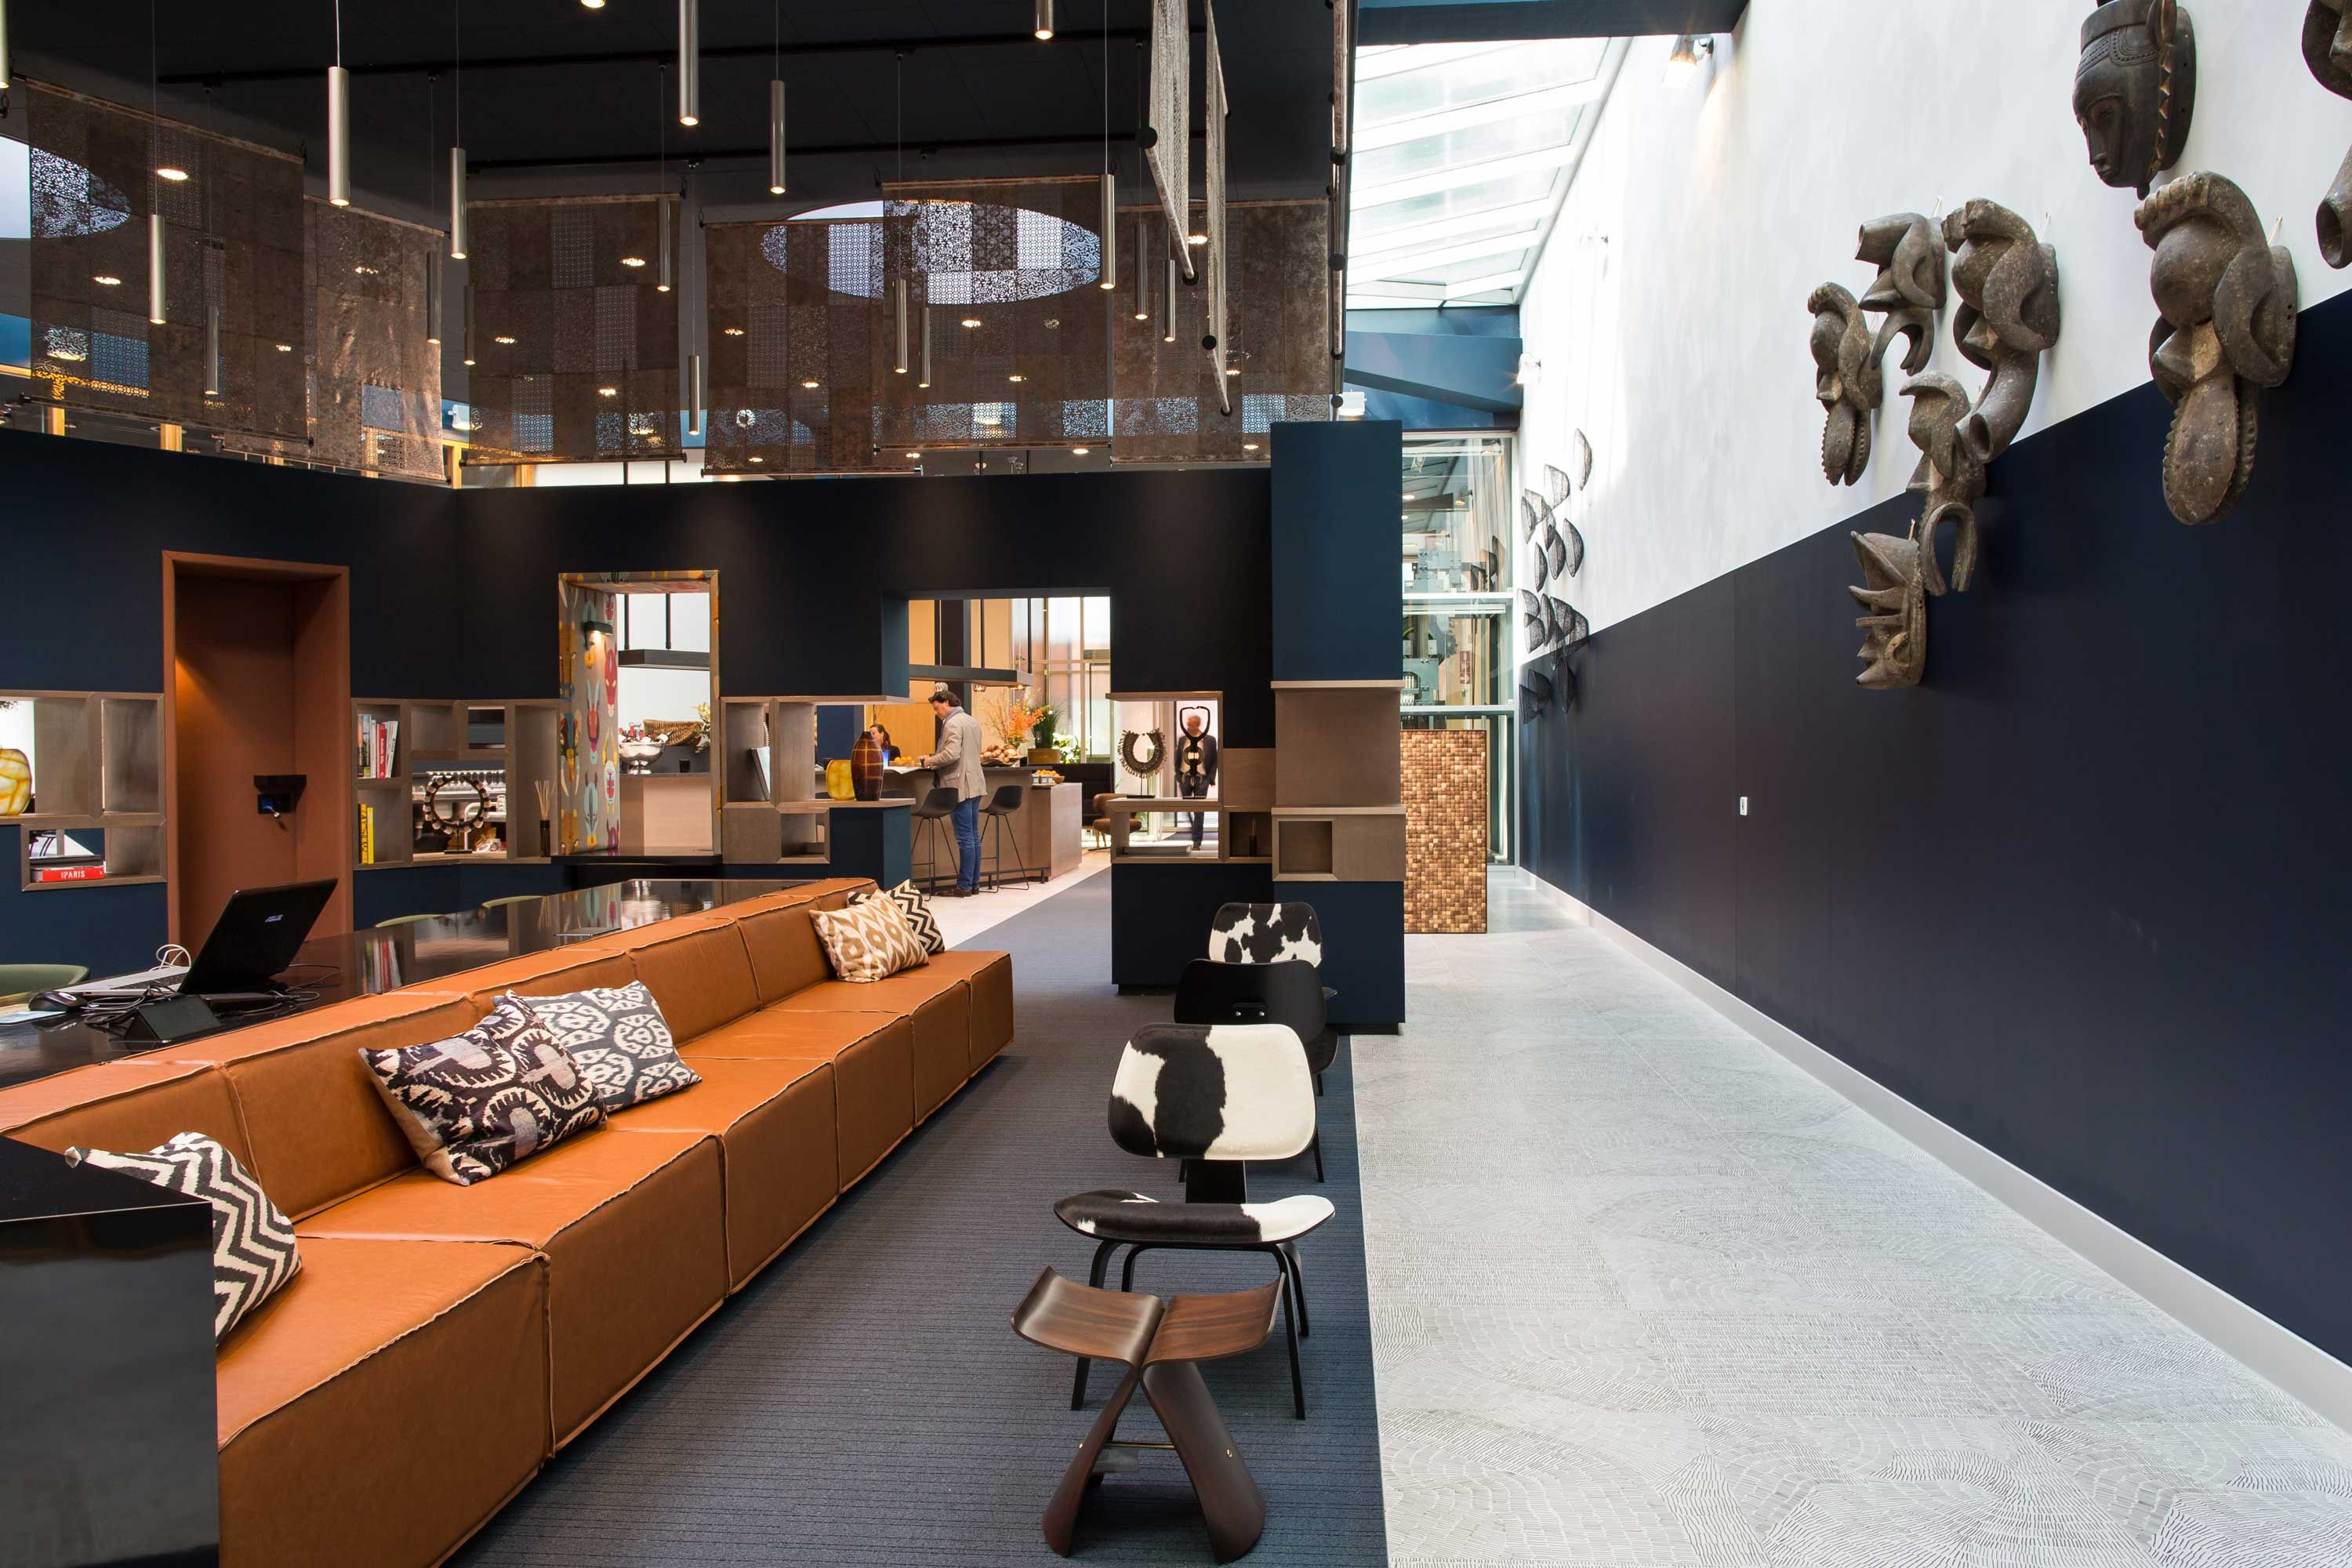 New Facebook Offices Designed In Industrial Style With Vintage Charm